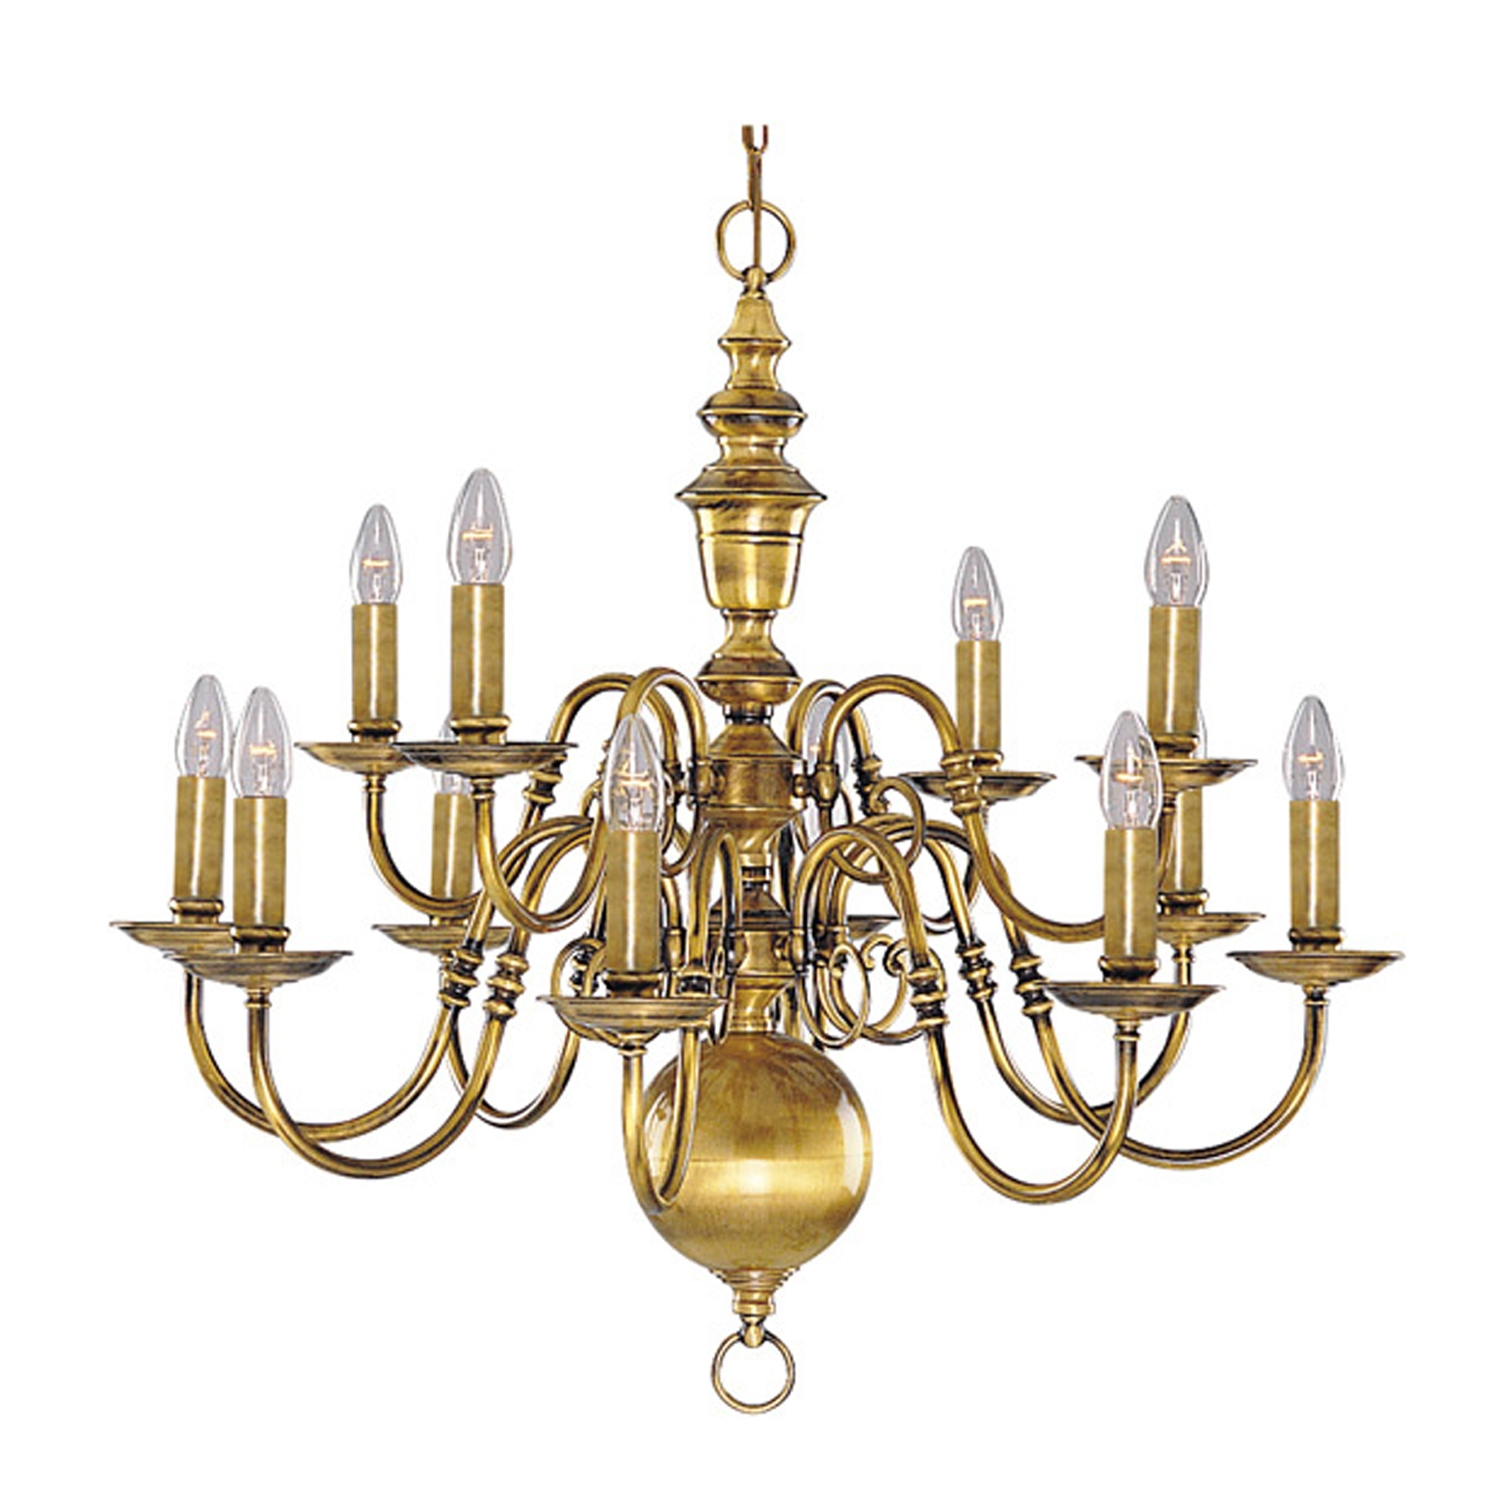 Brass Chandelier Vintage For Your Decorating Home Ideas With Brass With Vintage Brass Chandeliers (#5 of 12)